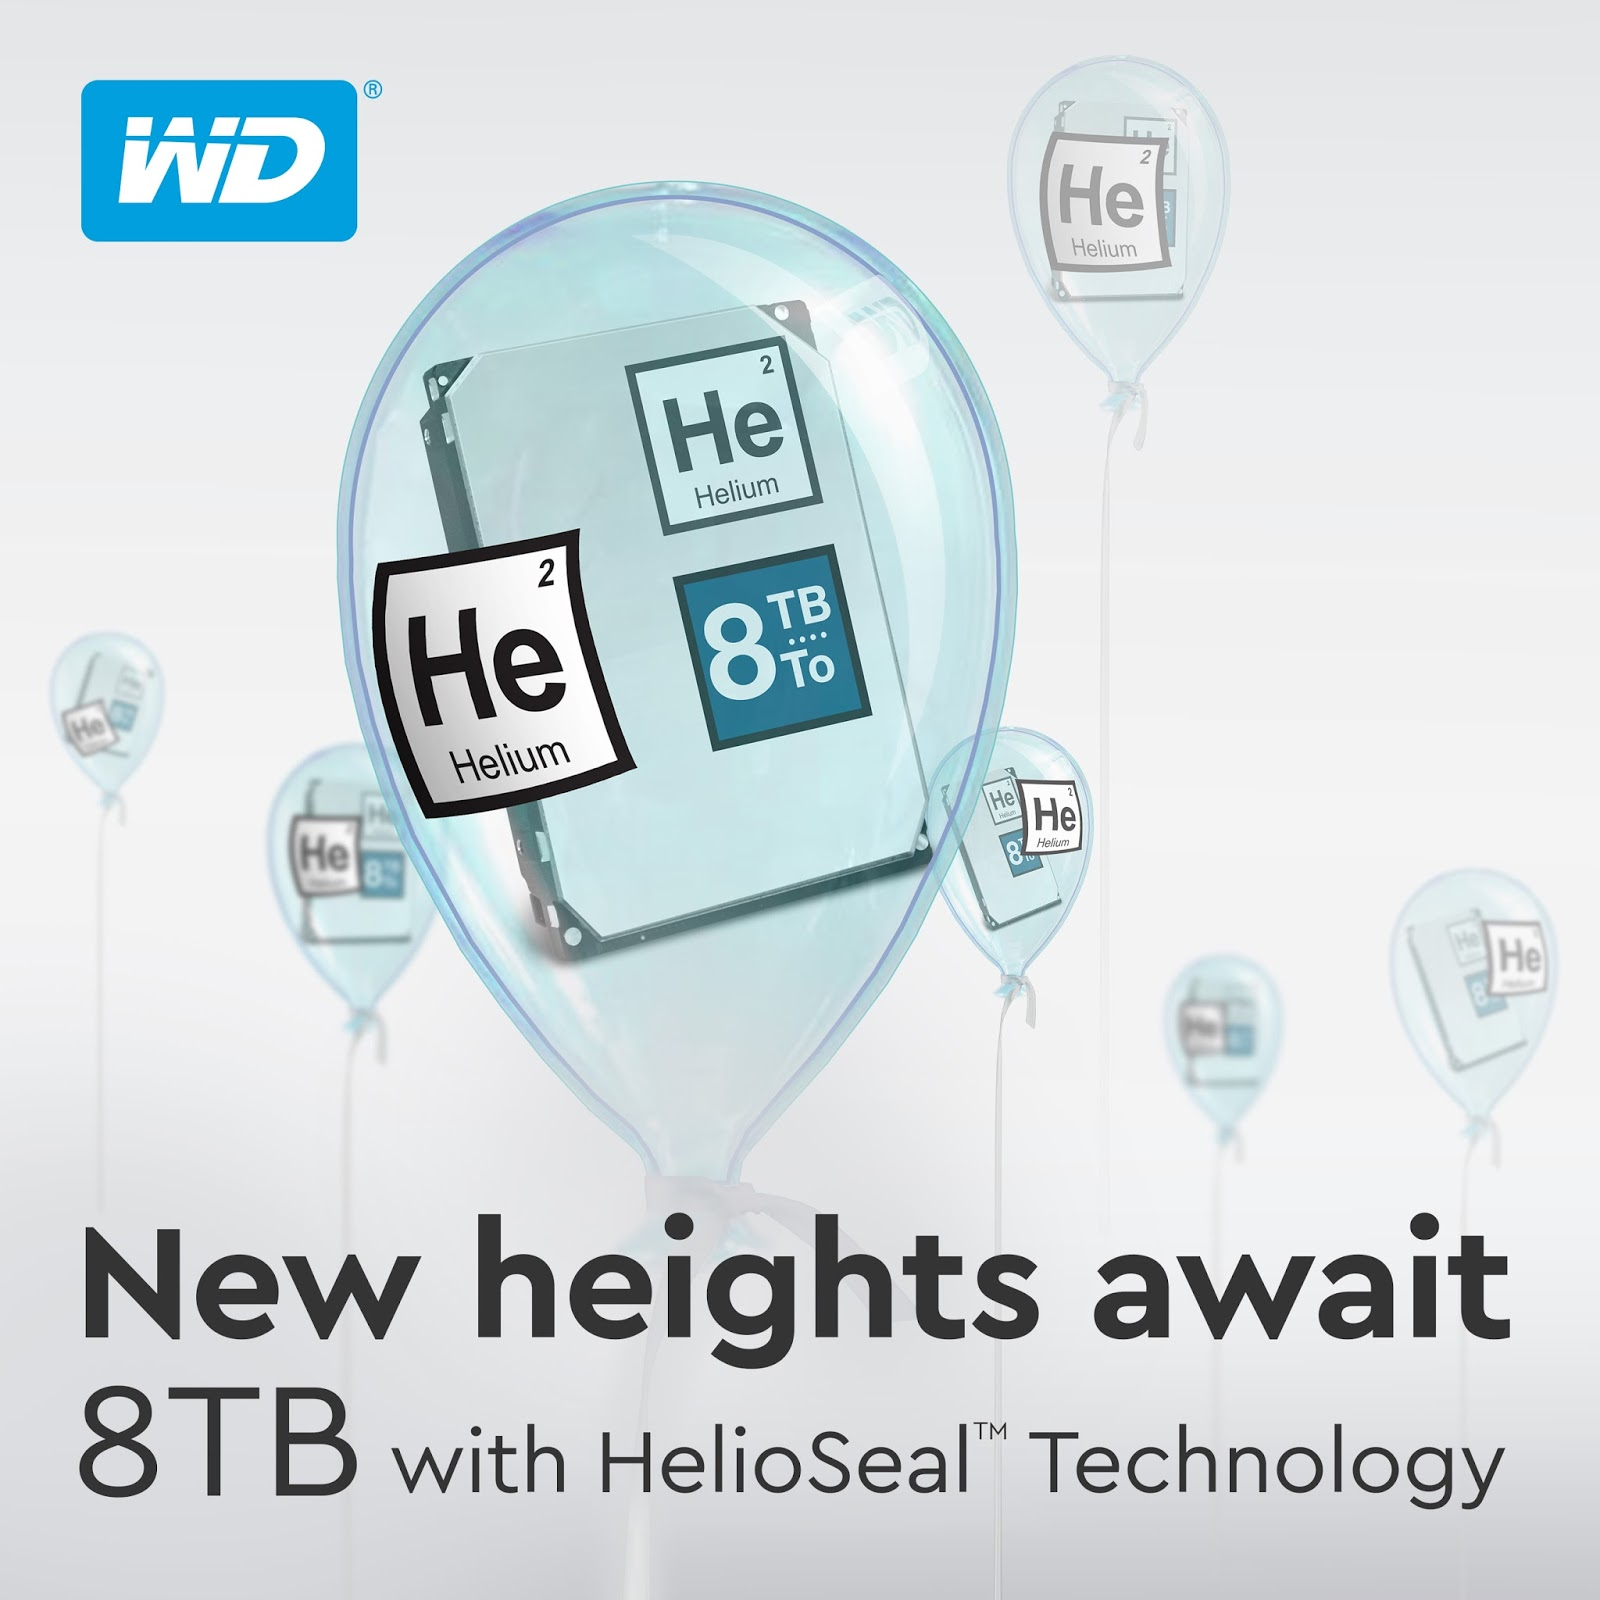 WESTERN DIGITAL EXPANDS ITS HARD DRIVES AND EXTERNAL STORAGE ...